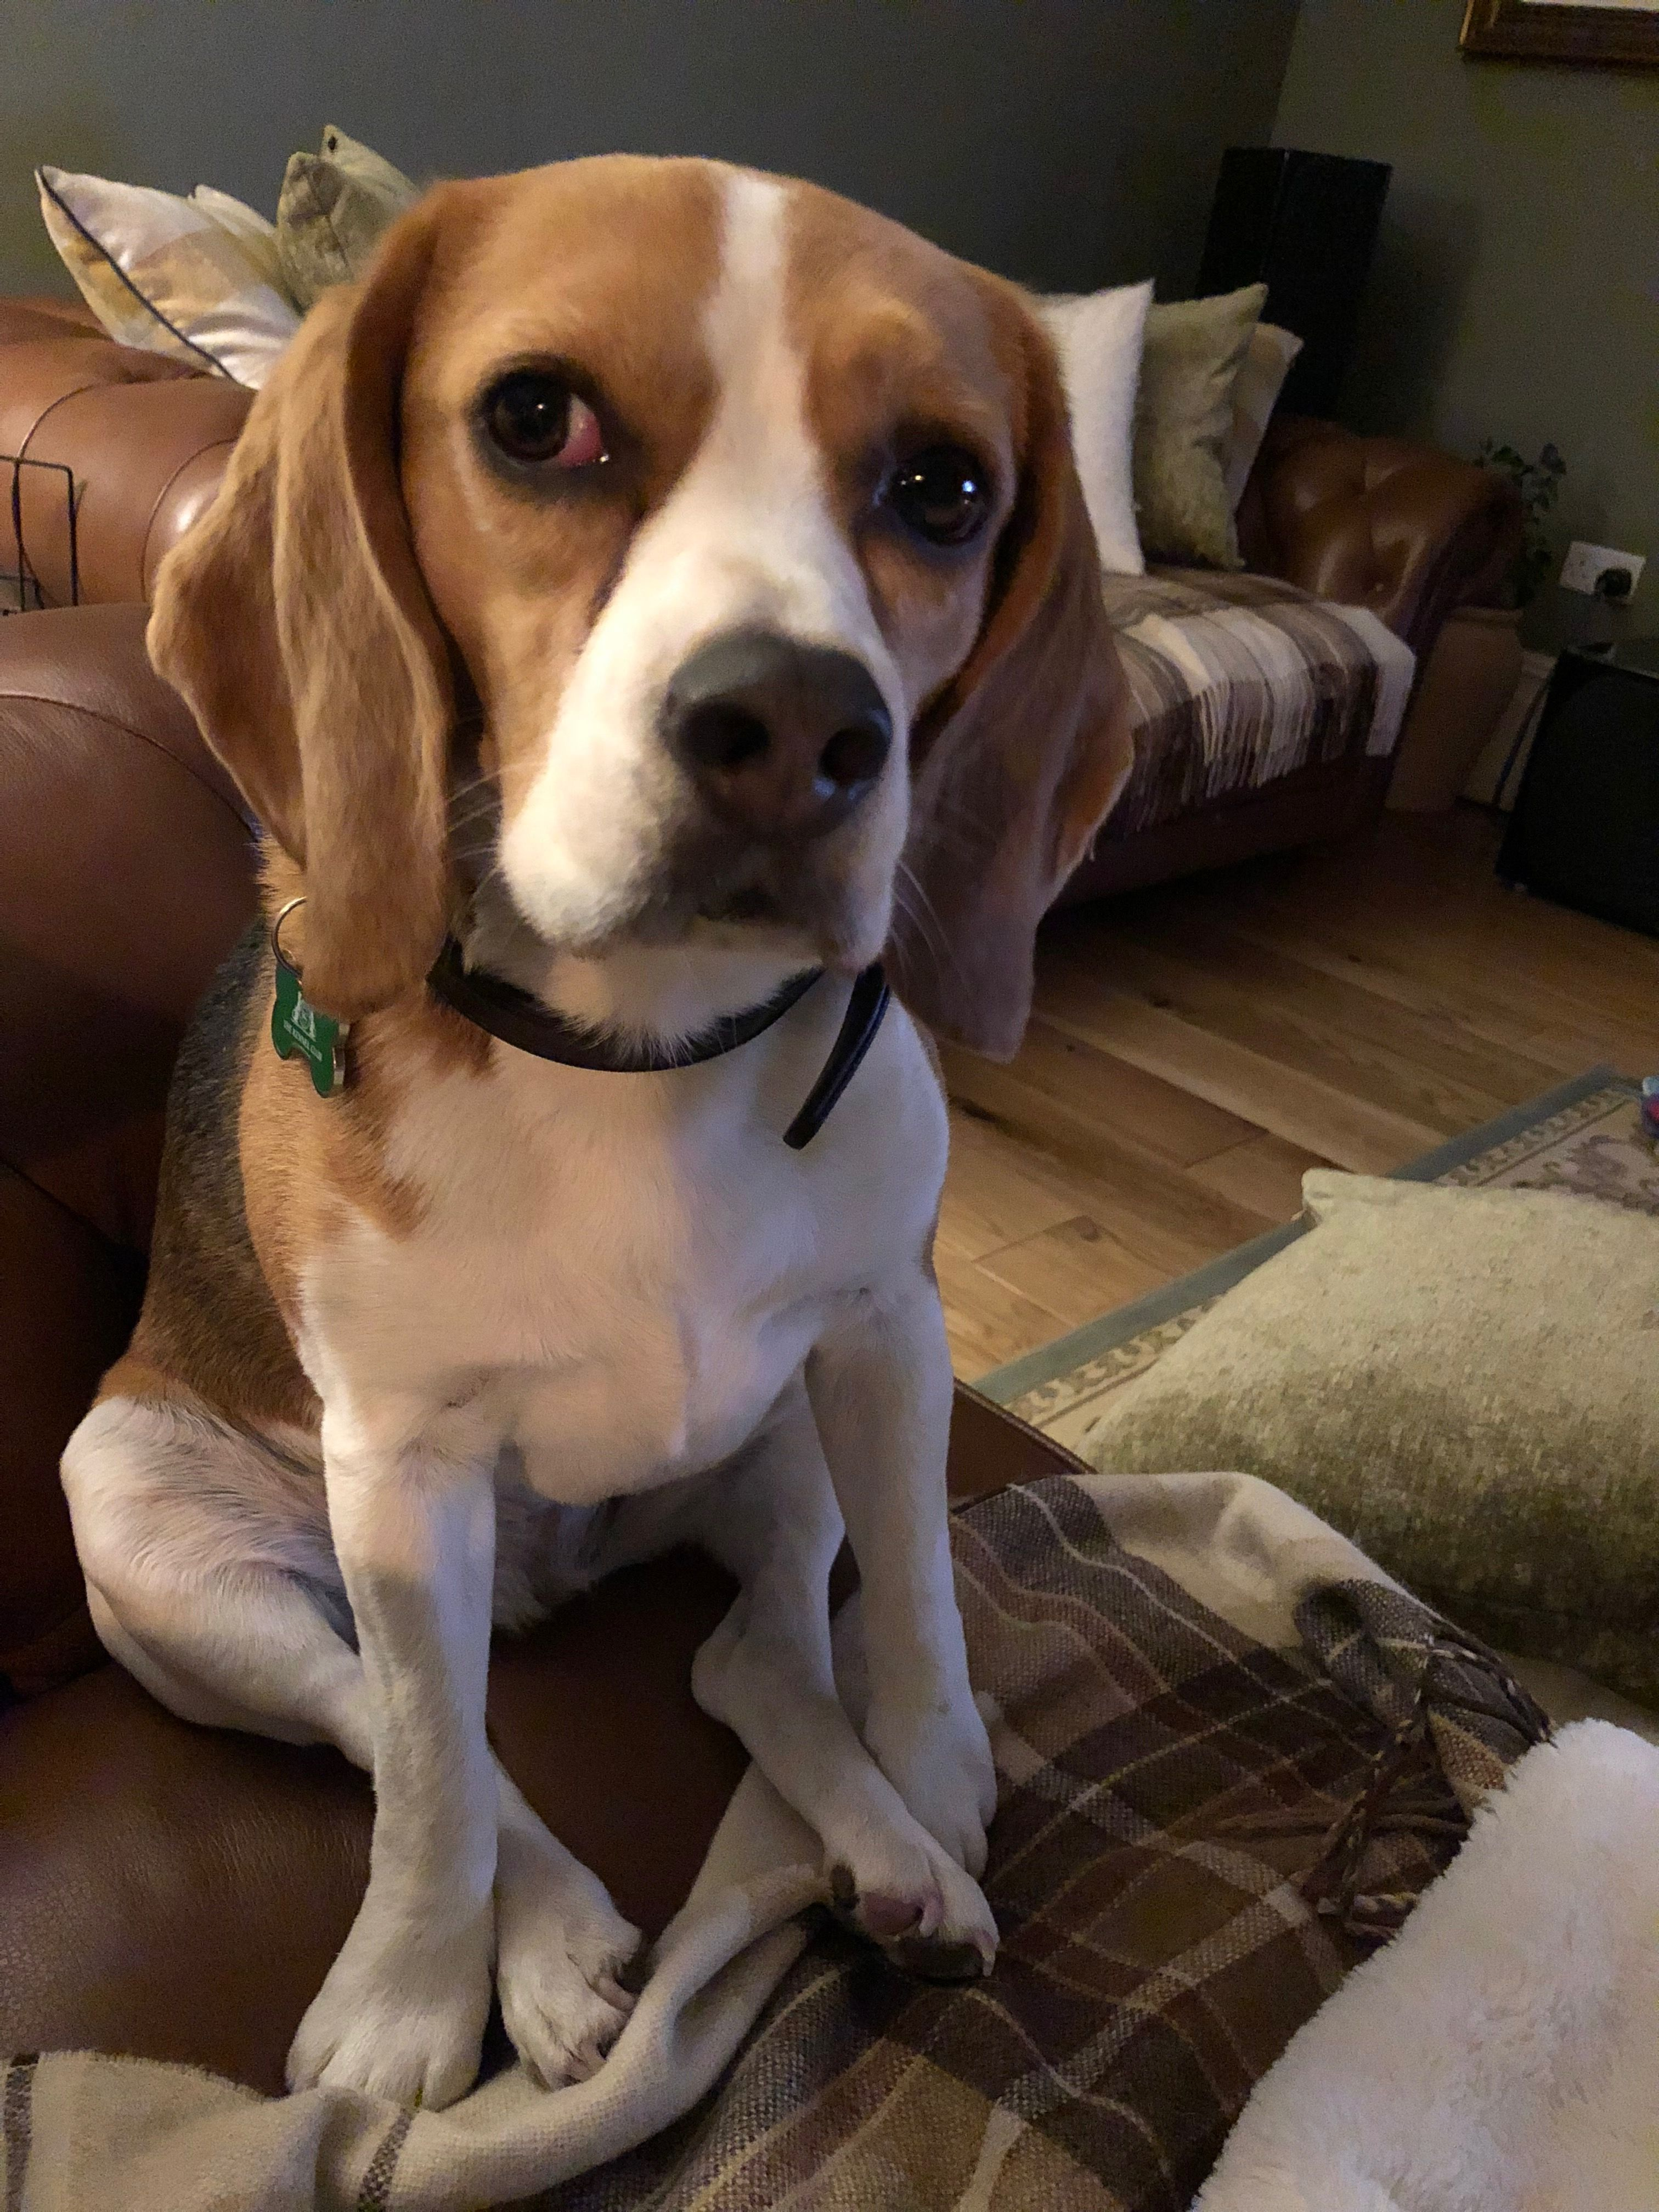 Pin By Ashley Wilson On Beagles Beagle Dogs Animals